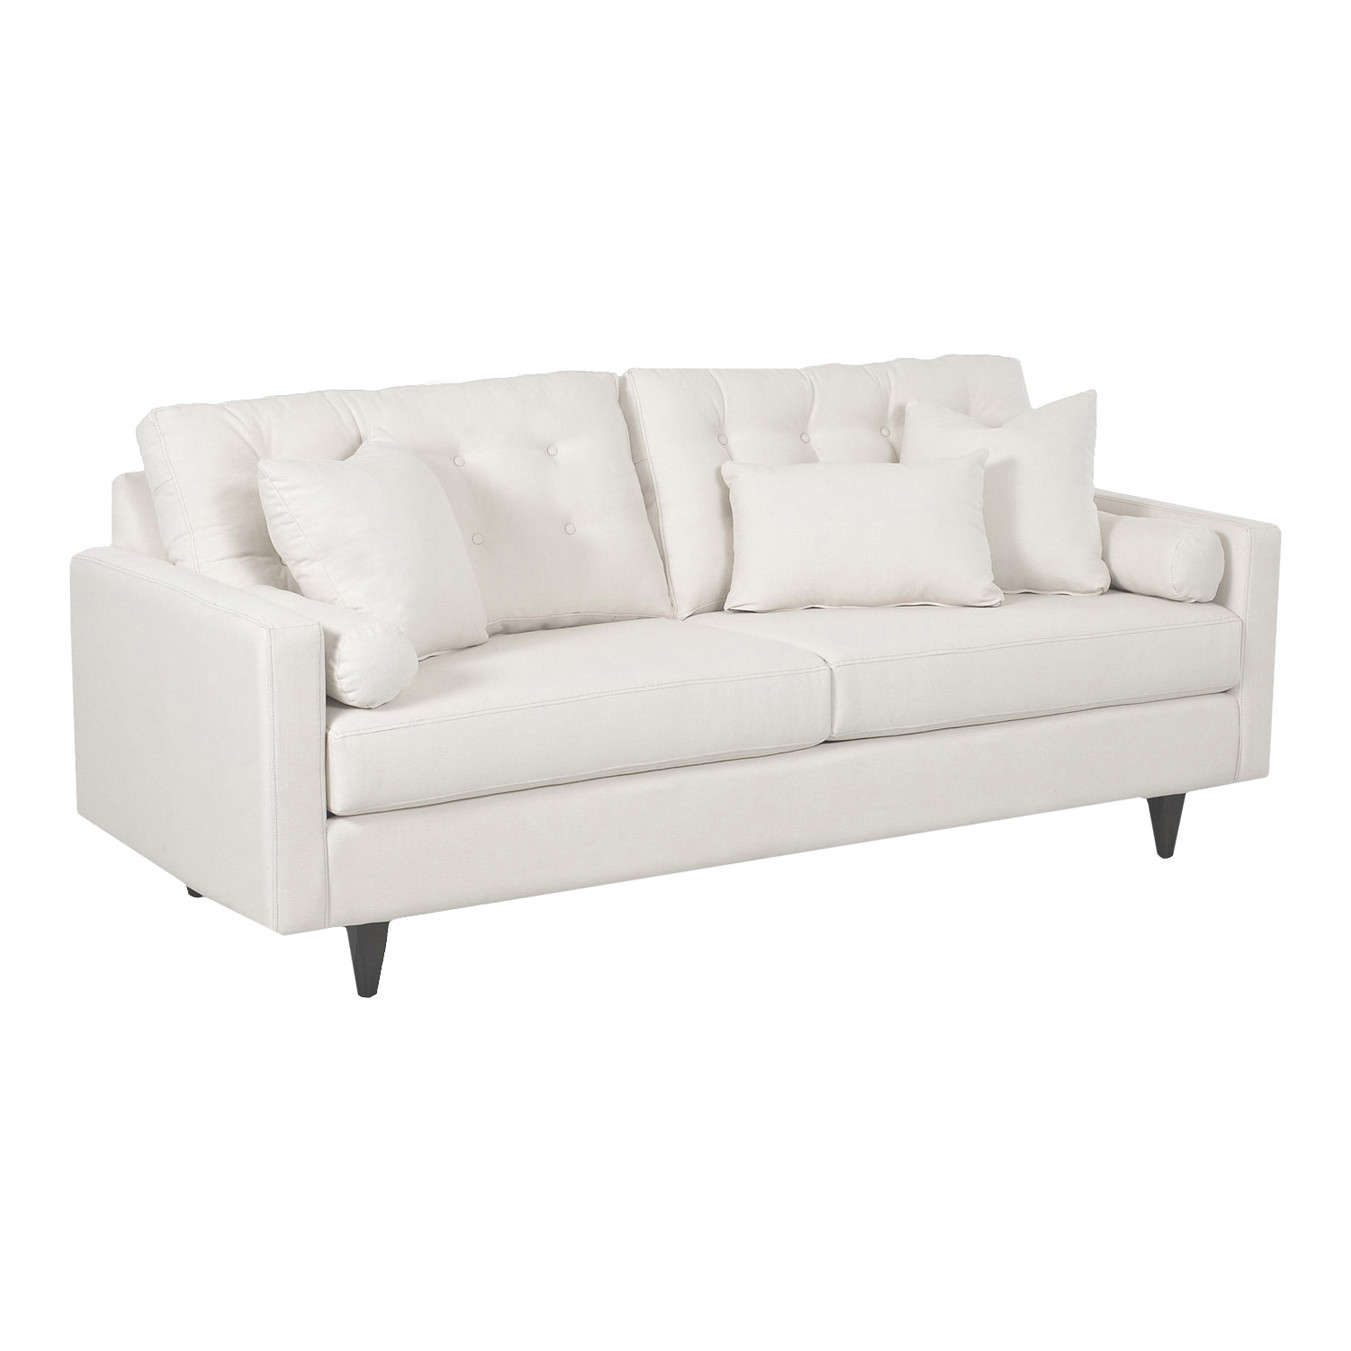 Best ideas about Wayfair Sectional Sofa . Save or Pin Wayfair Custom Upholstery Harper Sofa & Reviews Now.